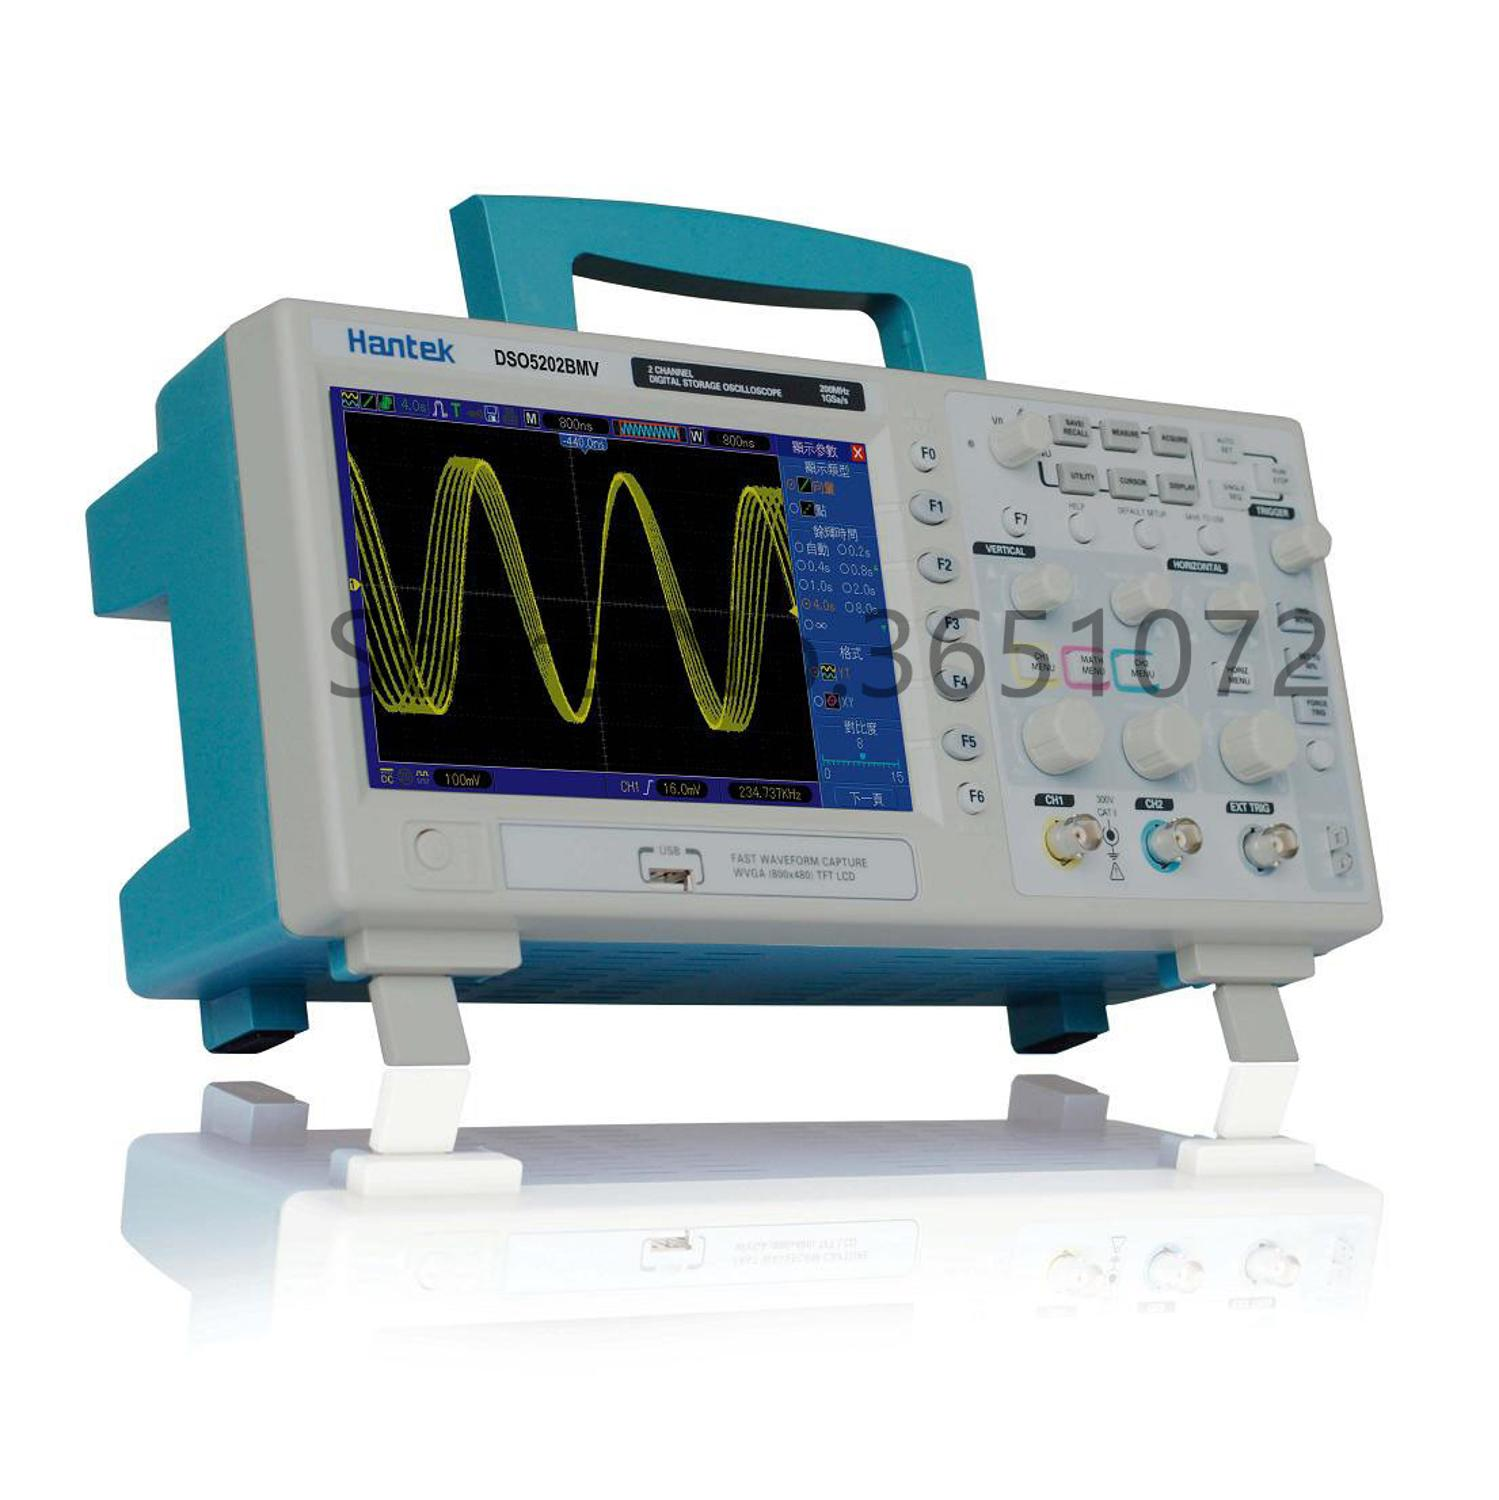 DSO5202BMV 2channels <font><b>200MHz</b></font> 1GSa/s <font><b>Digital</b></font> Storage <font><b>Oscilloscope</b></font> Built-in Video Help image